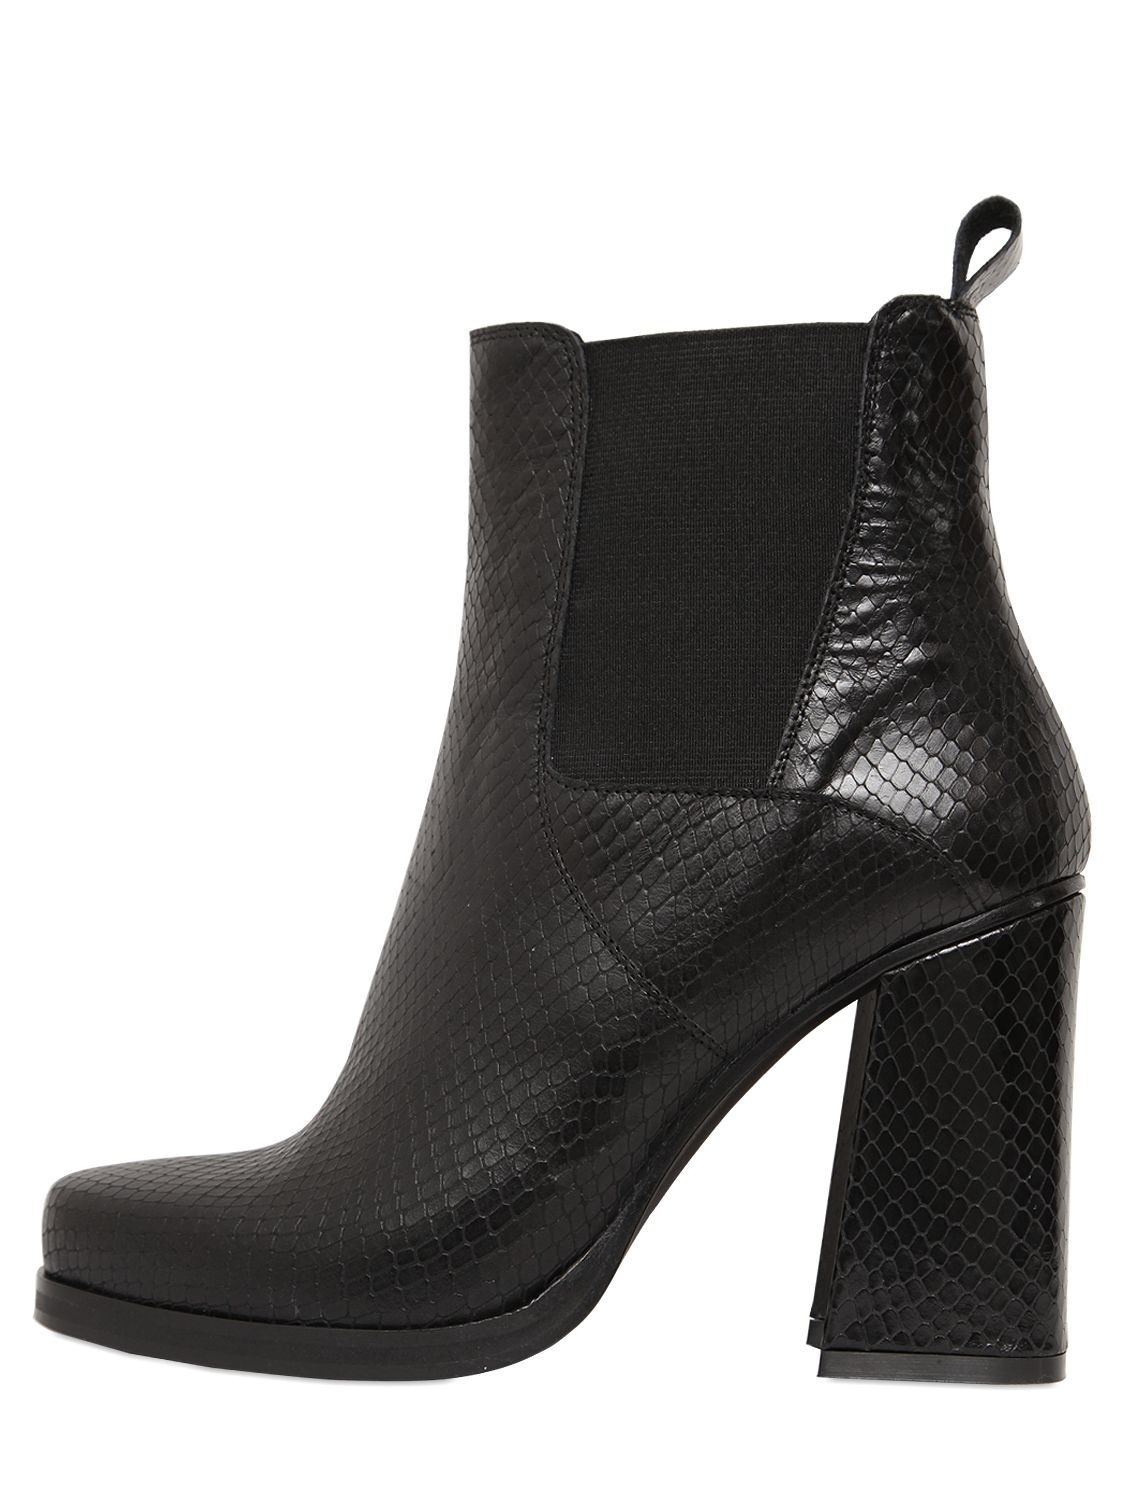 GIAMPAOLO VIOZZI Ankle boots calfskin Embossing jSsEc